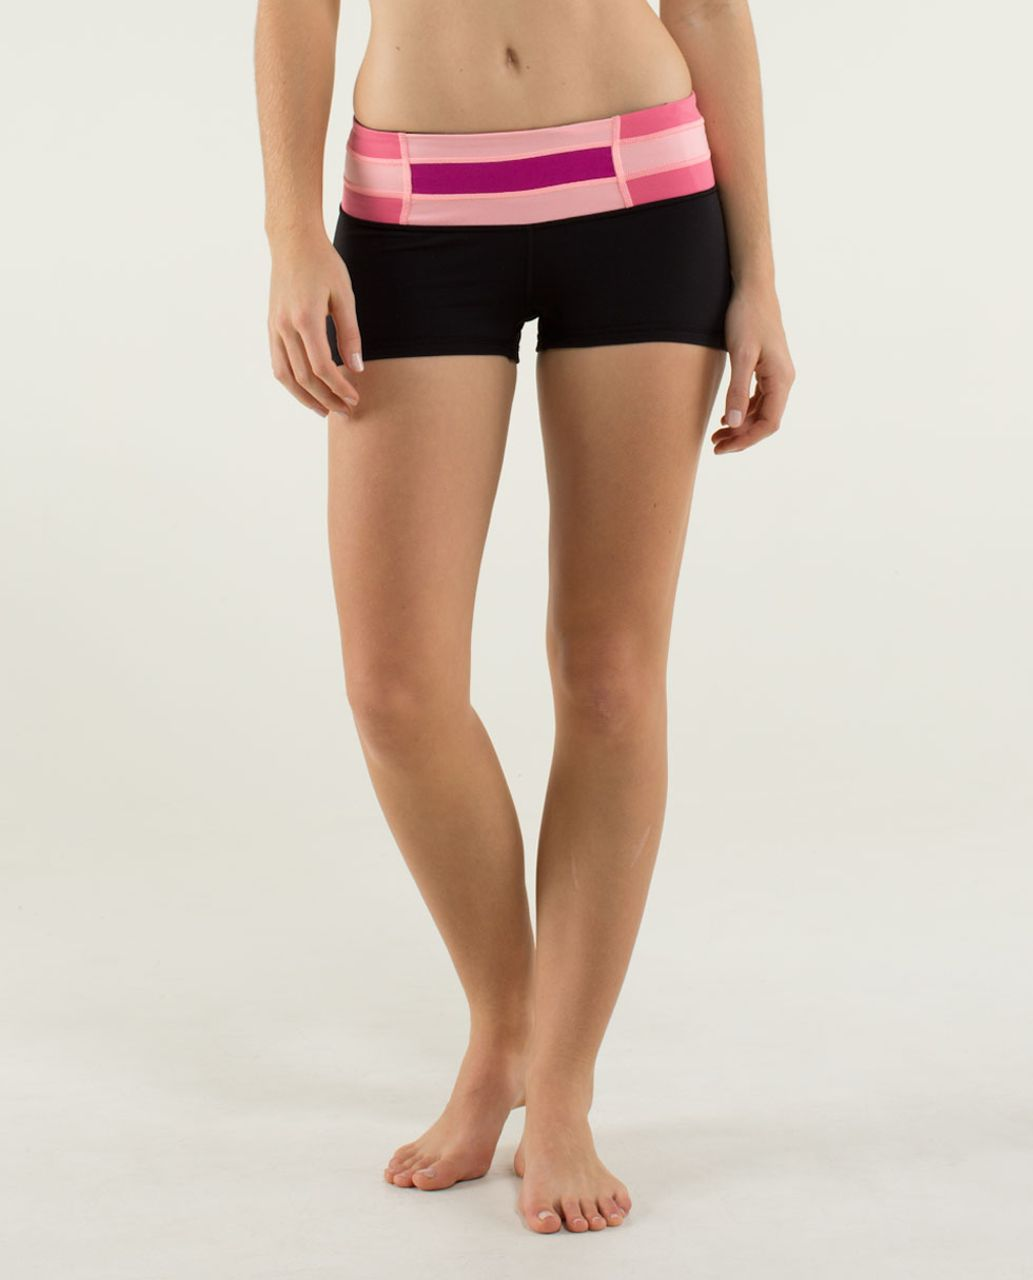 Lululemon Boogie Short *Full-On Luon - Black / Quilt Winter 13-01